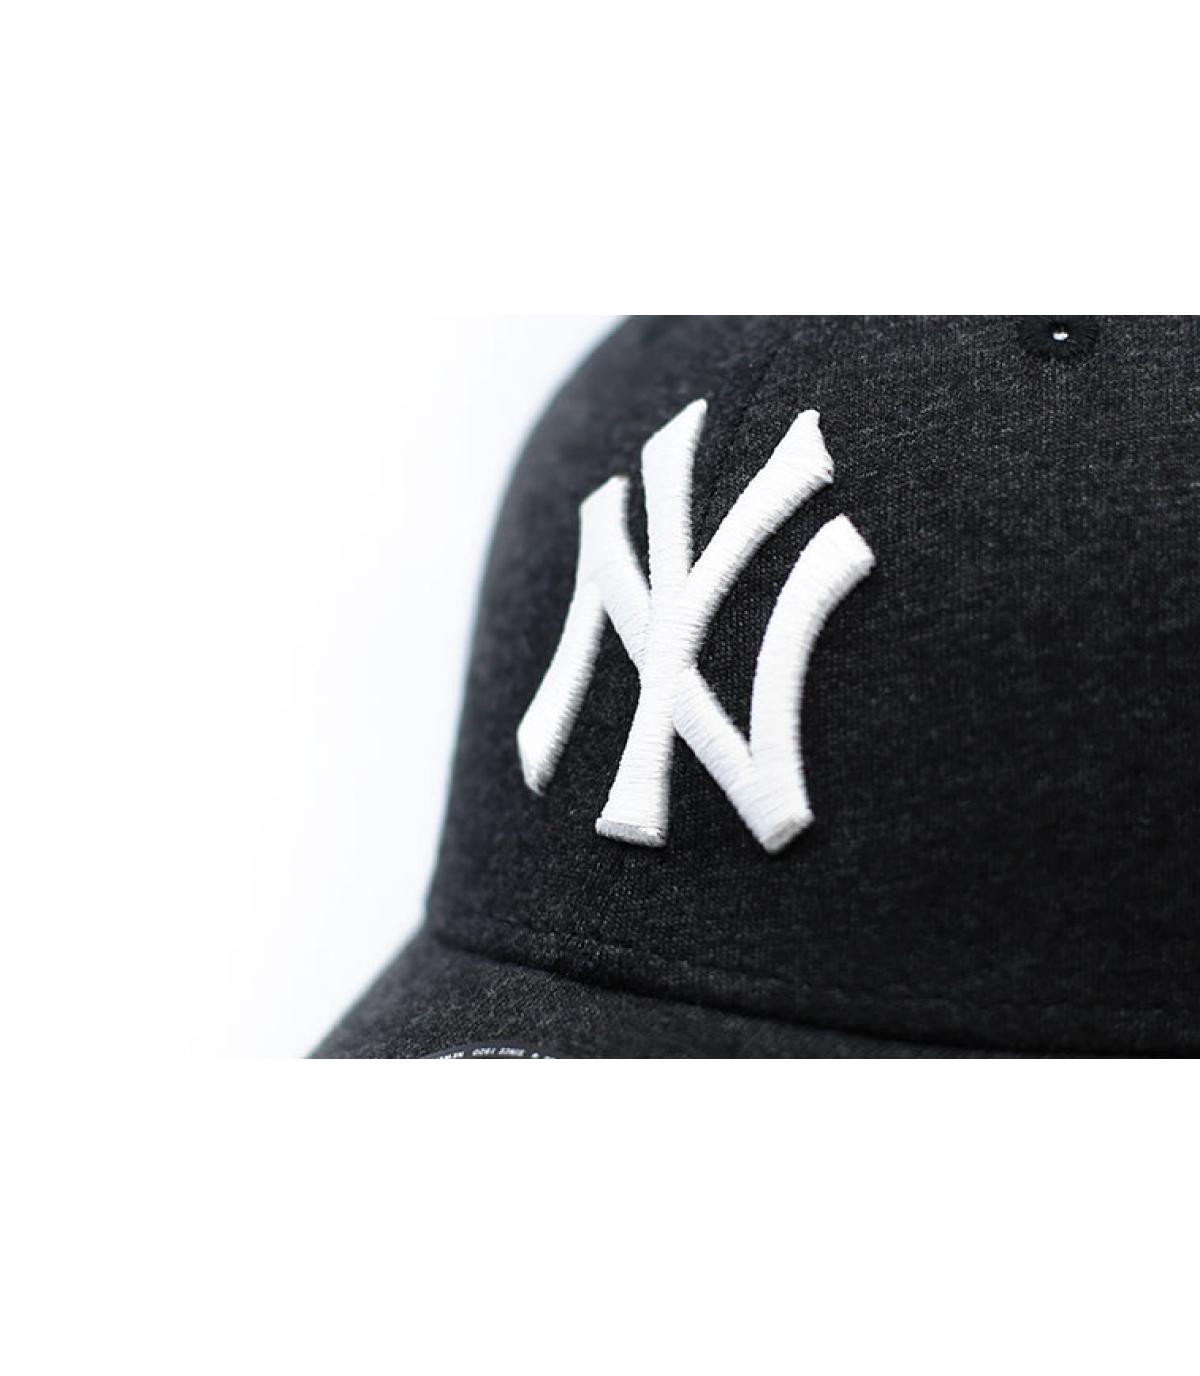 Details Trucker 9Forty Summer League NY black - afbeeling 3